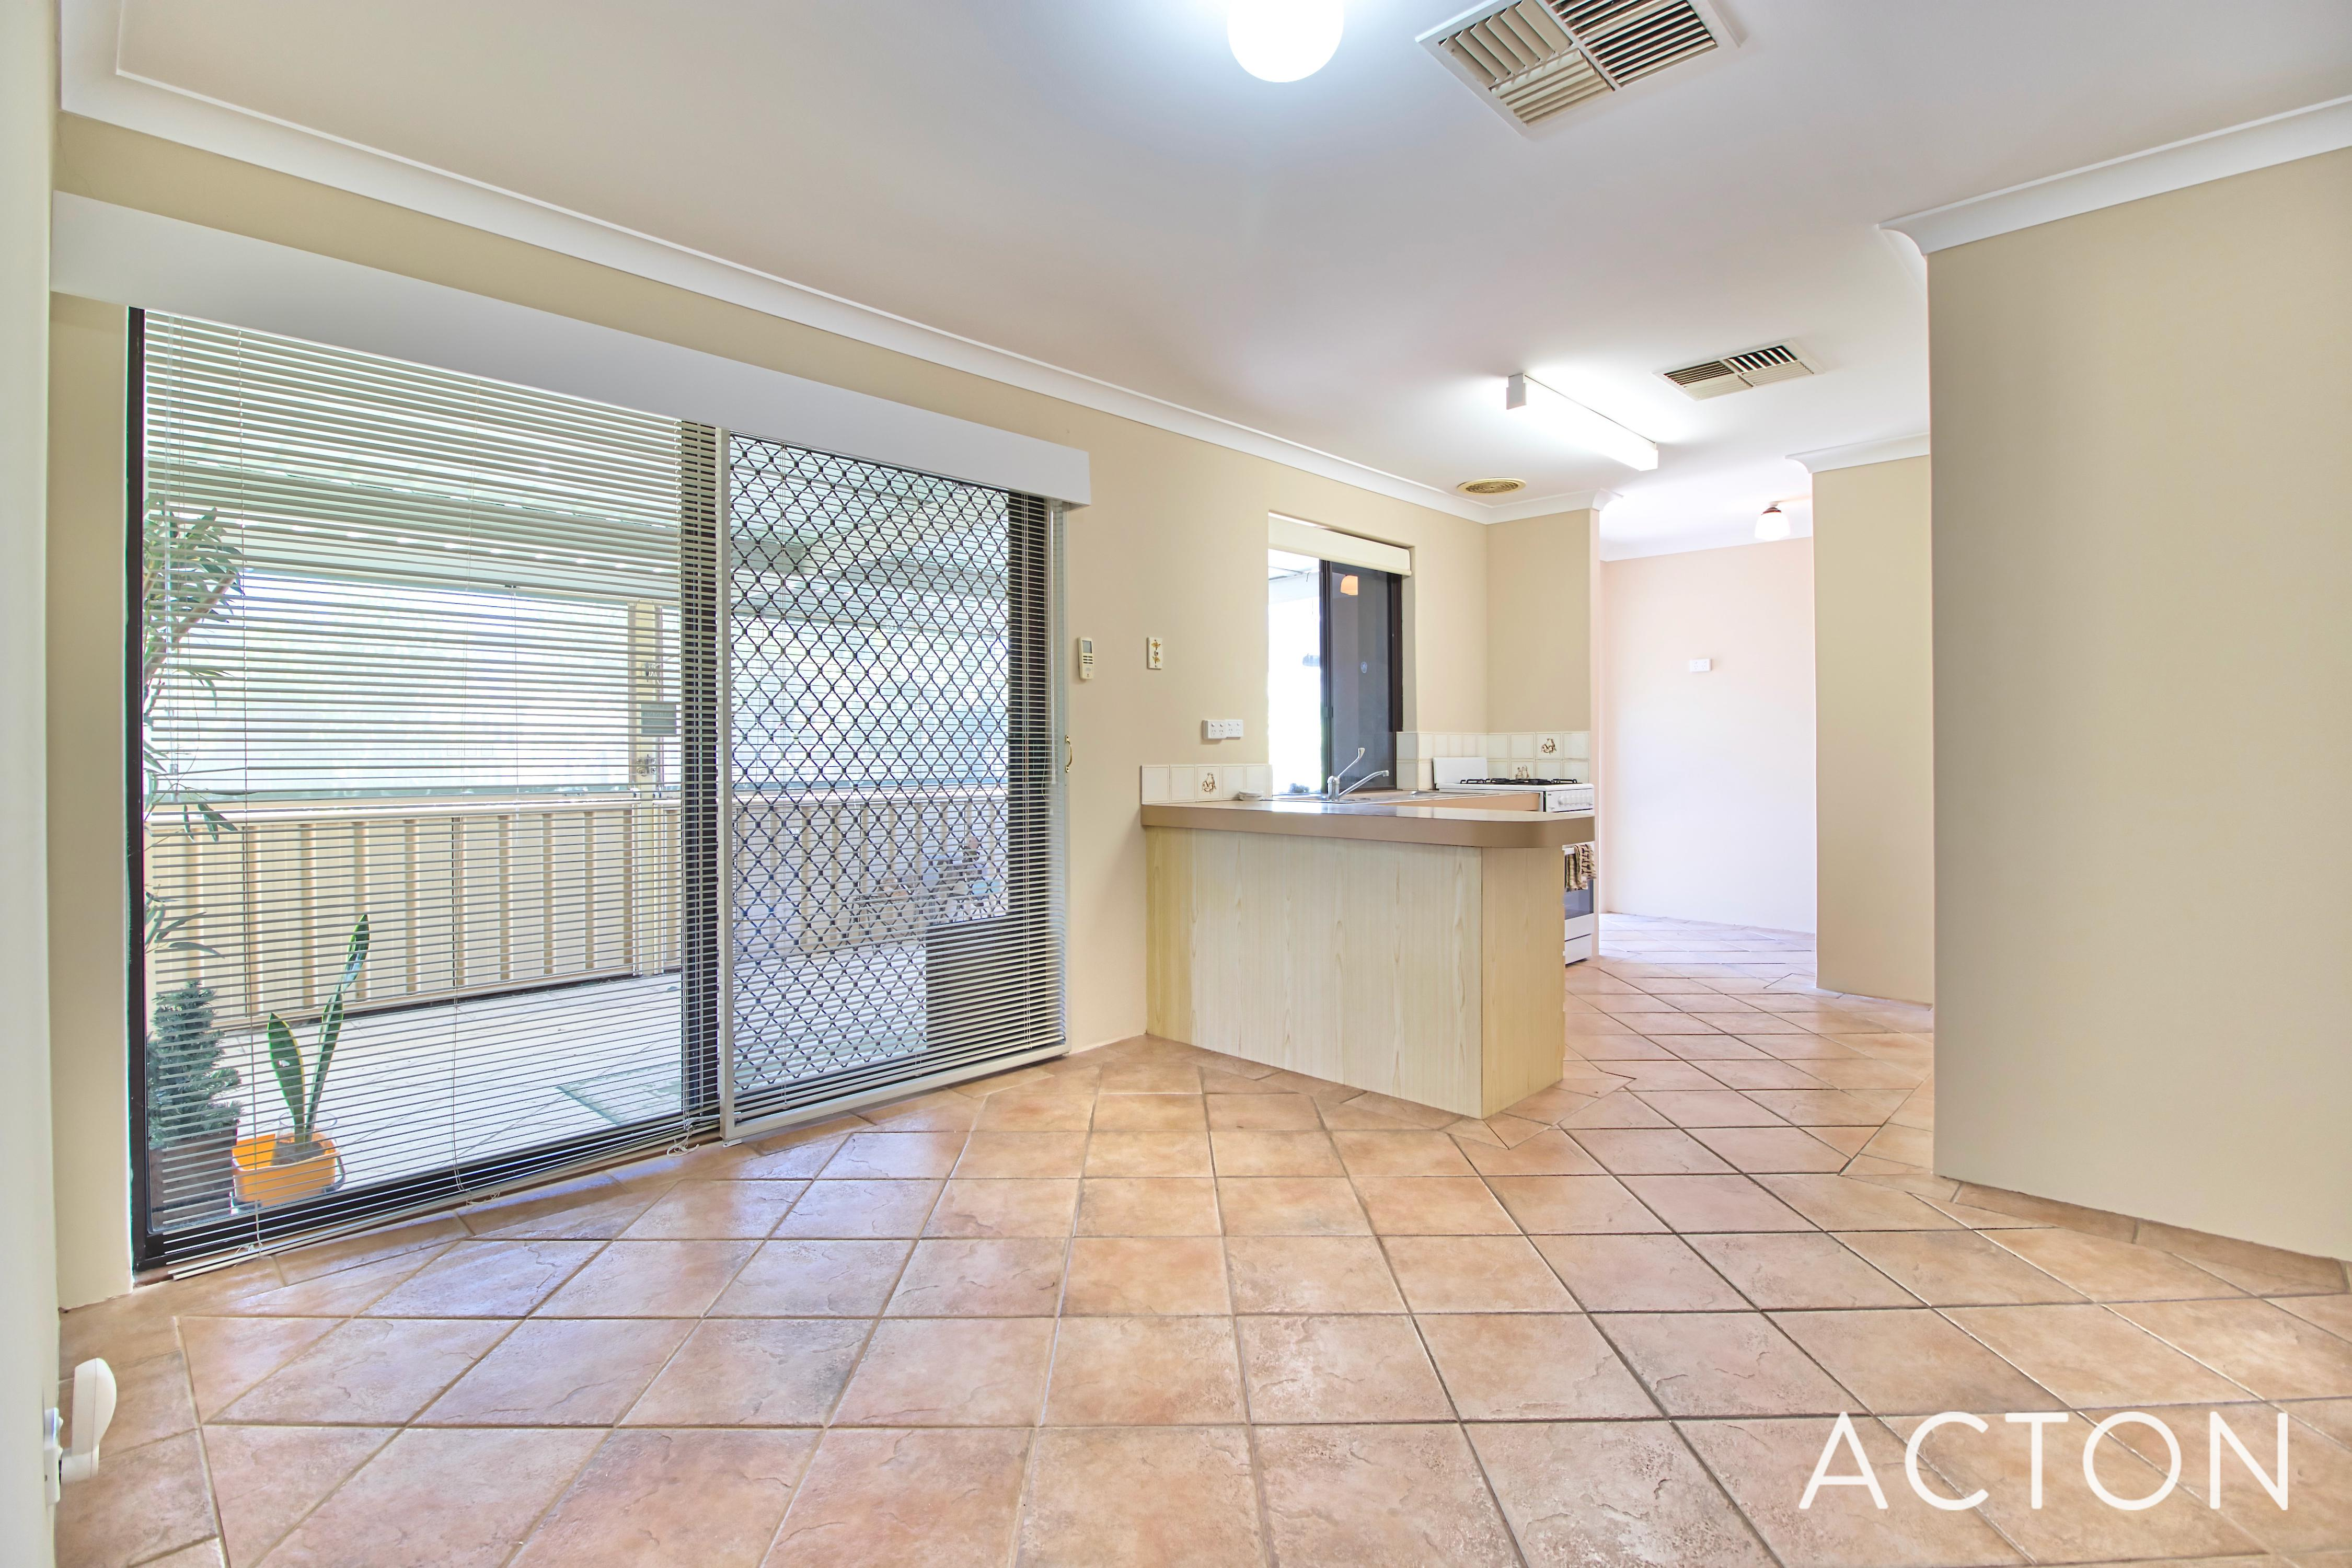 10 Holten Court Cooloongup - House For Sale - 22798508 - ACTON Rockingham